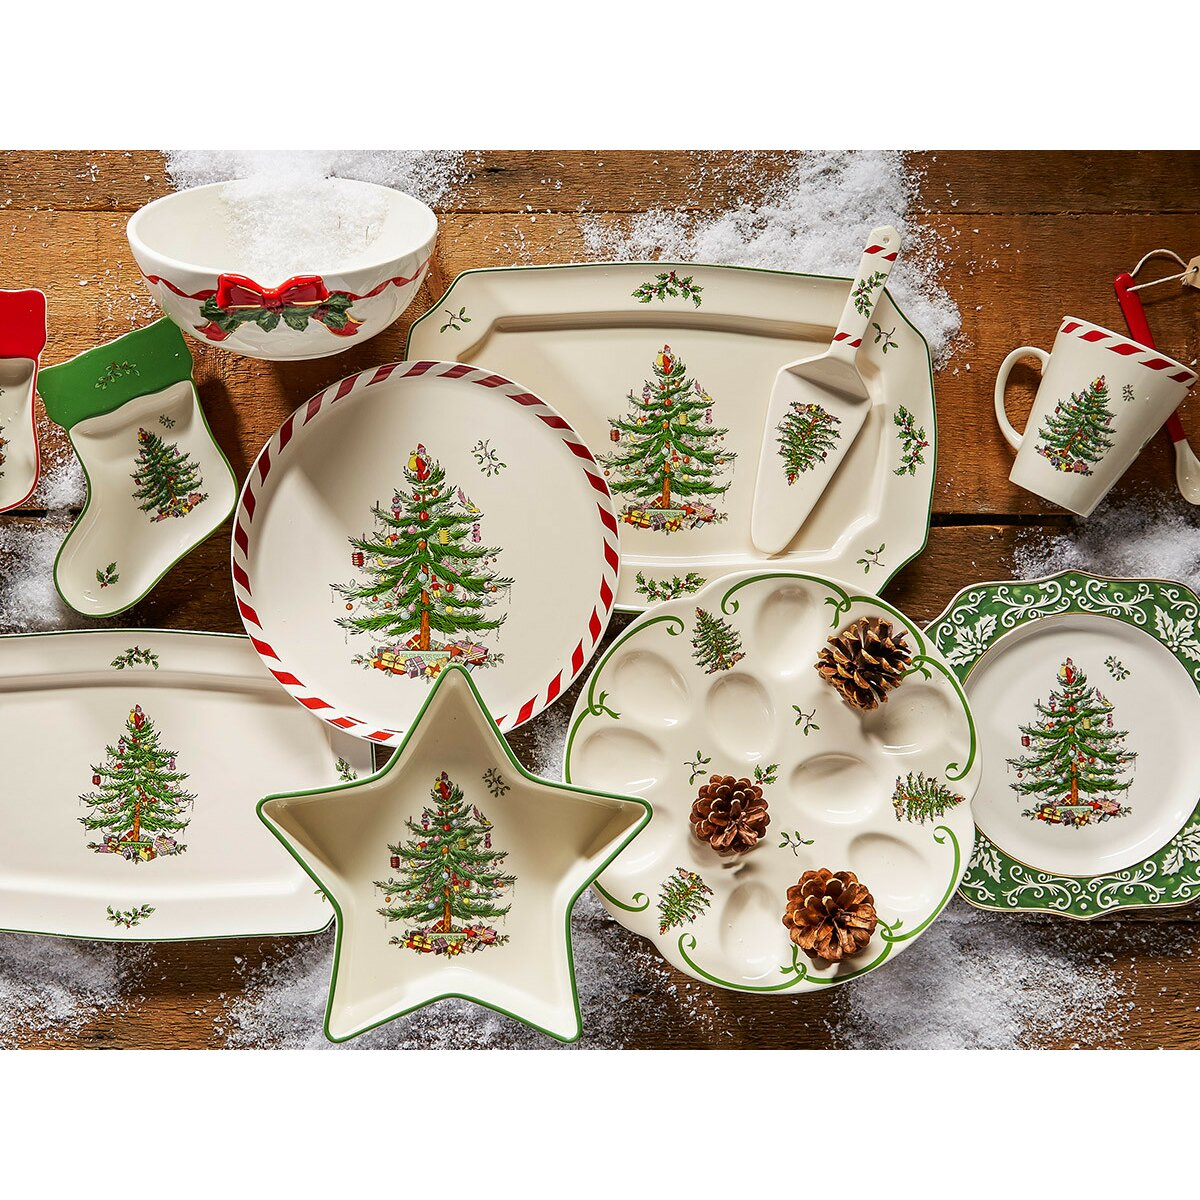 Spode Christmas Tree China Sale: Spode Christmas Tree Peppermint Mug With Spoon & Reviews